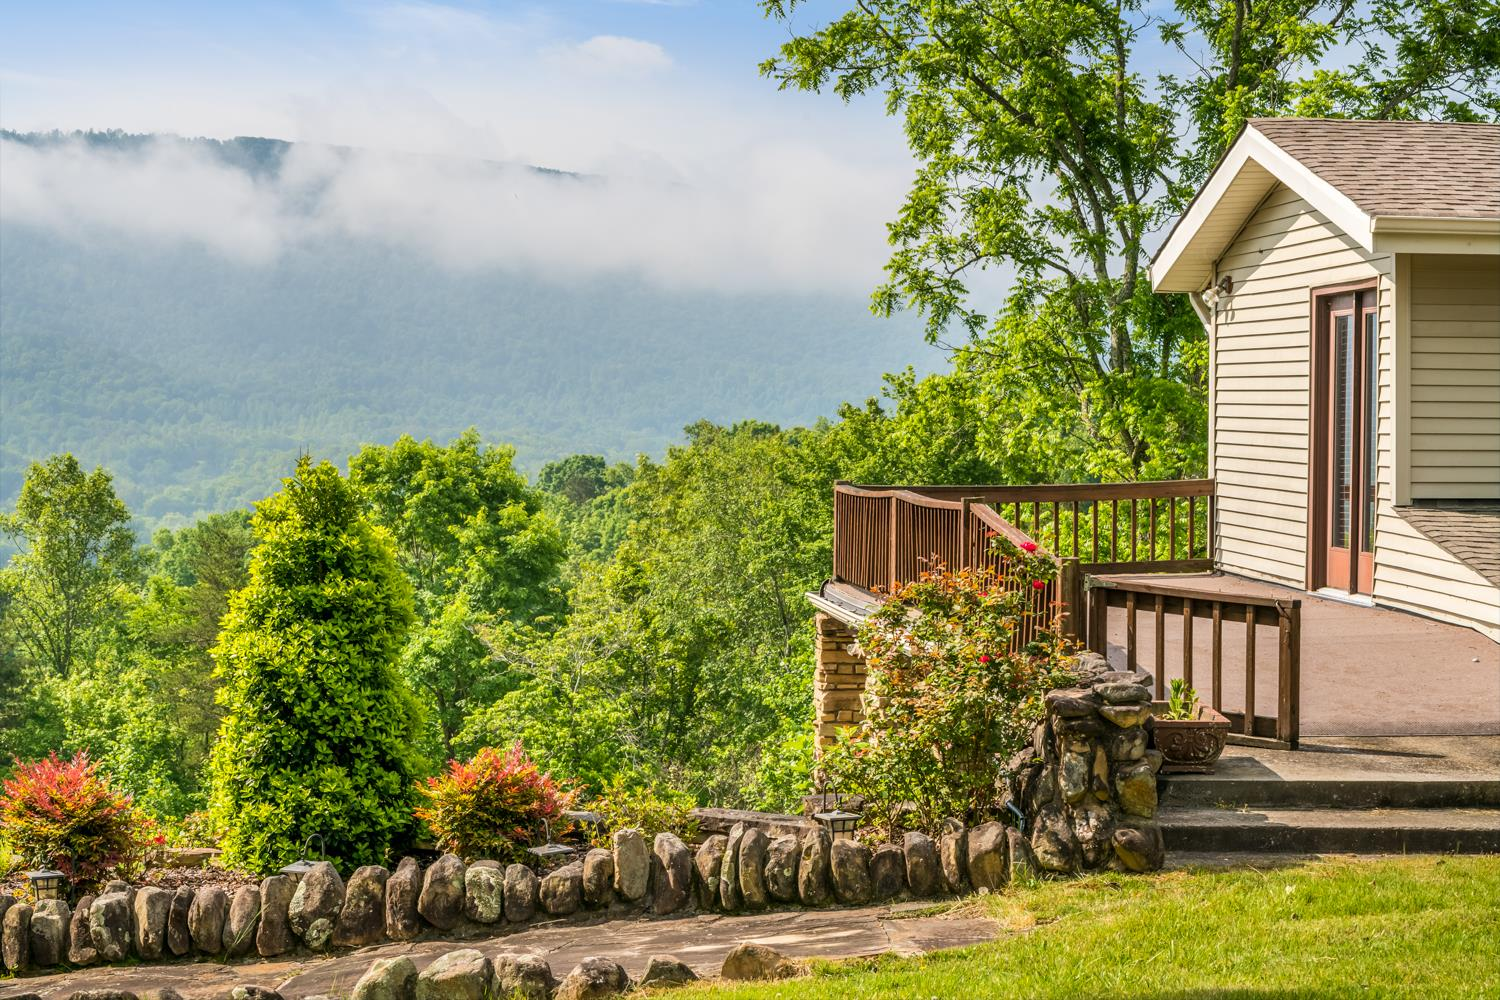 362 Daisy Dr Pikeville, TN 37367